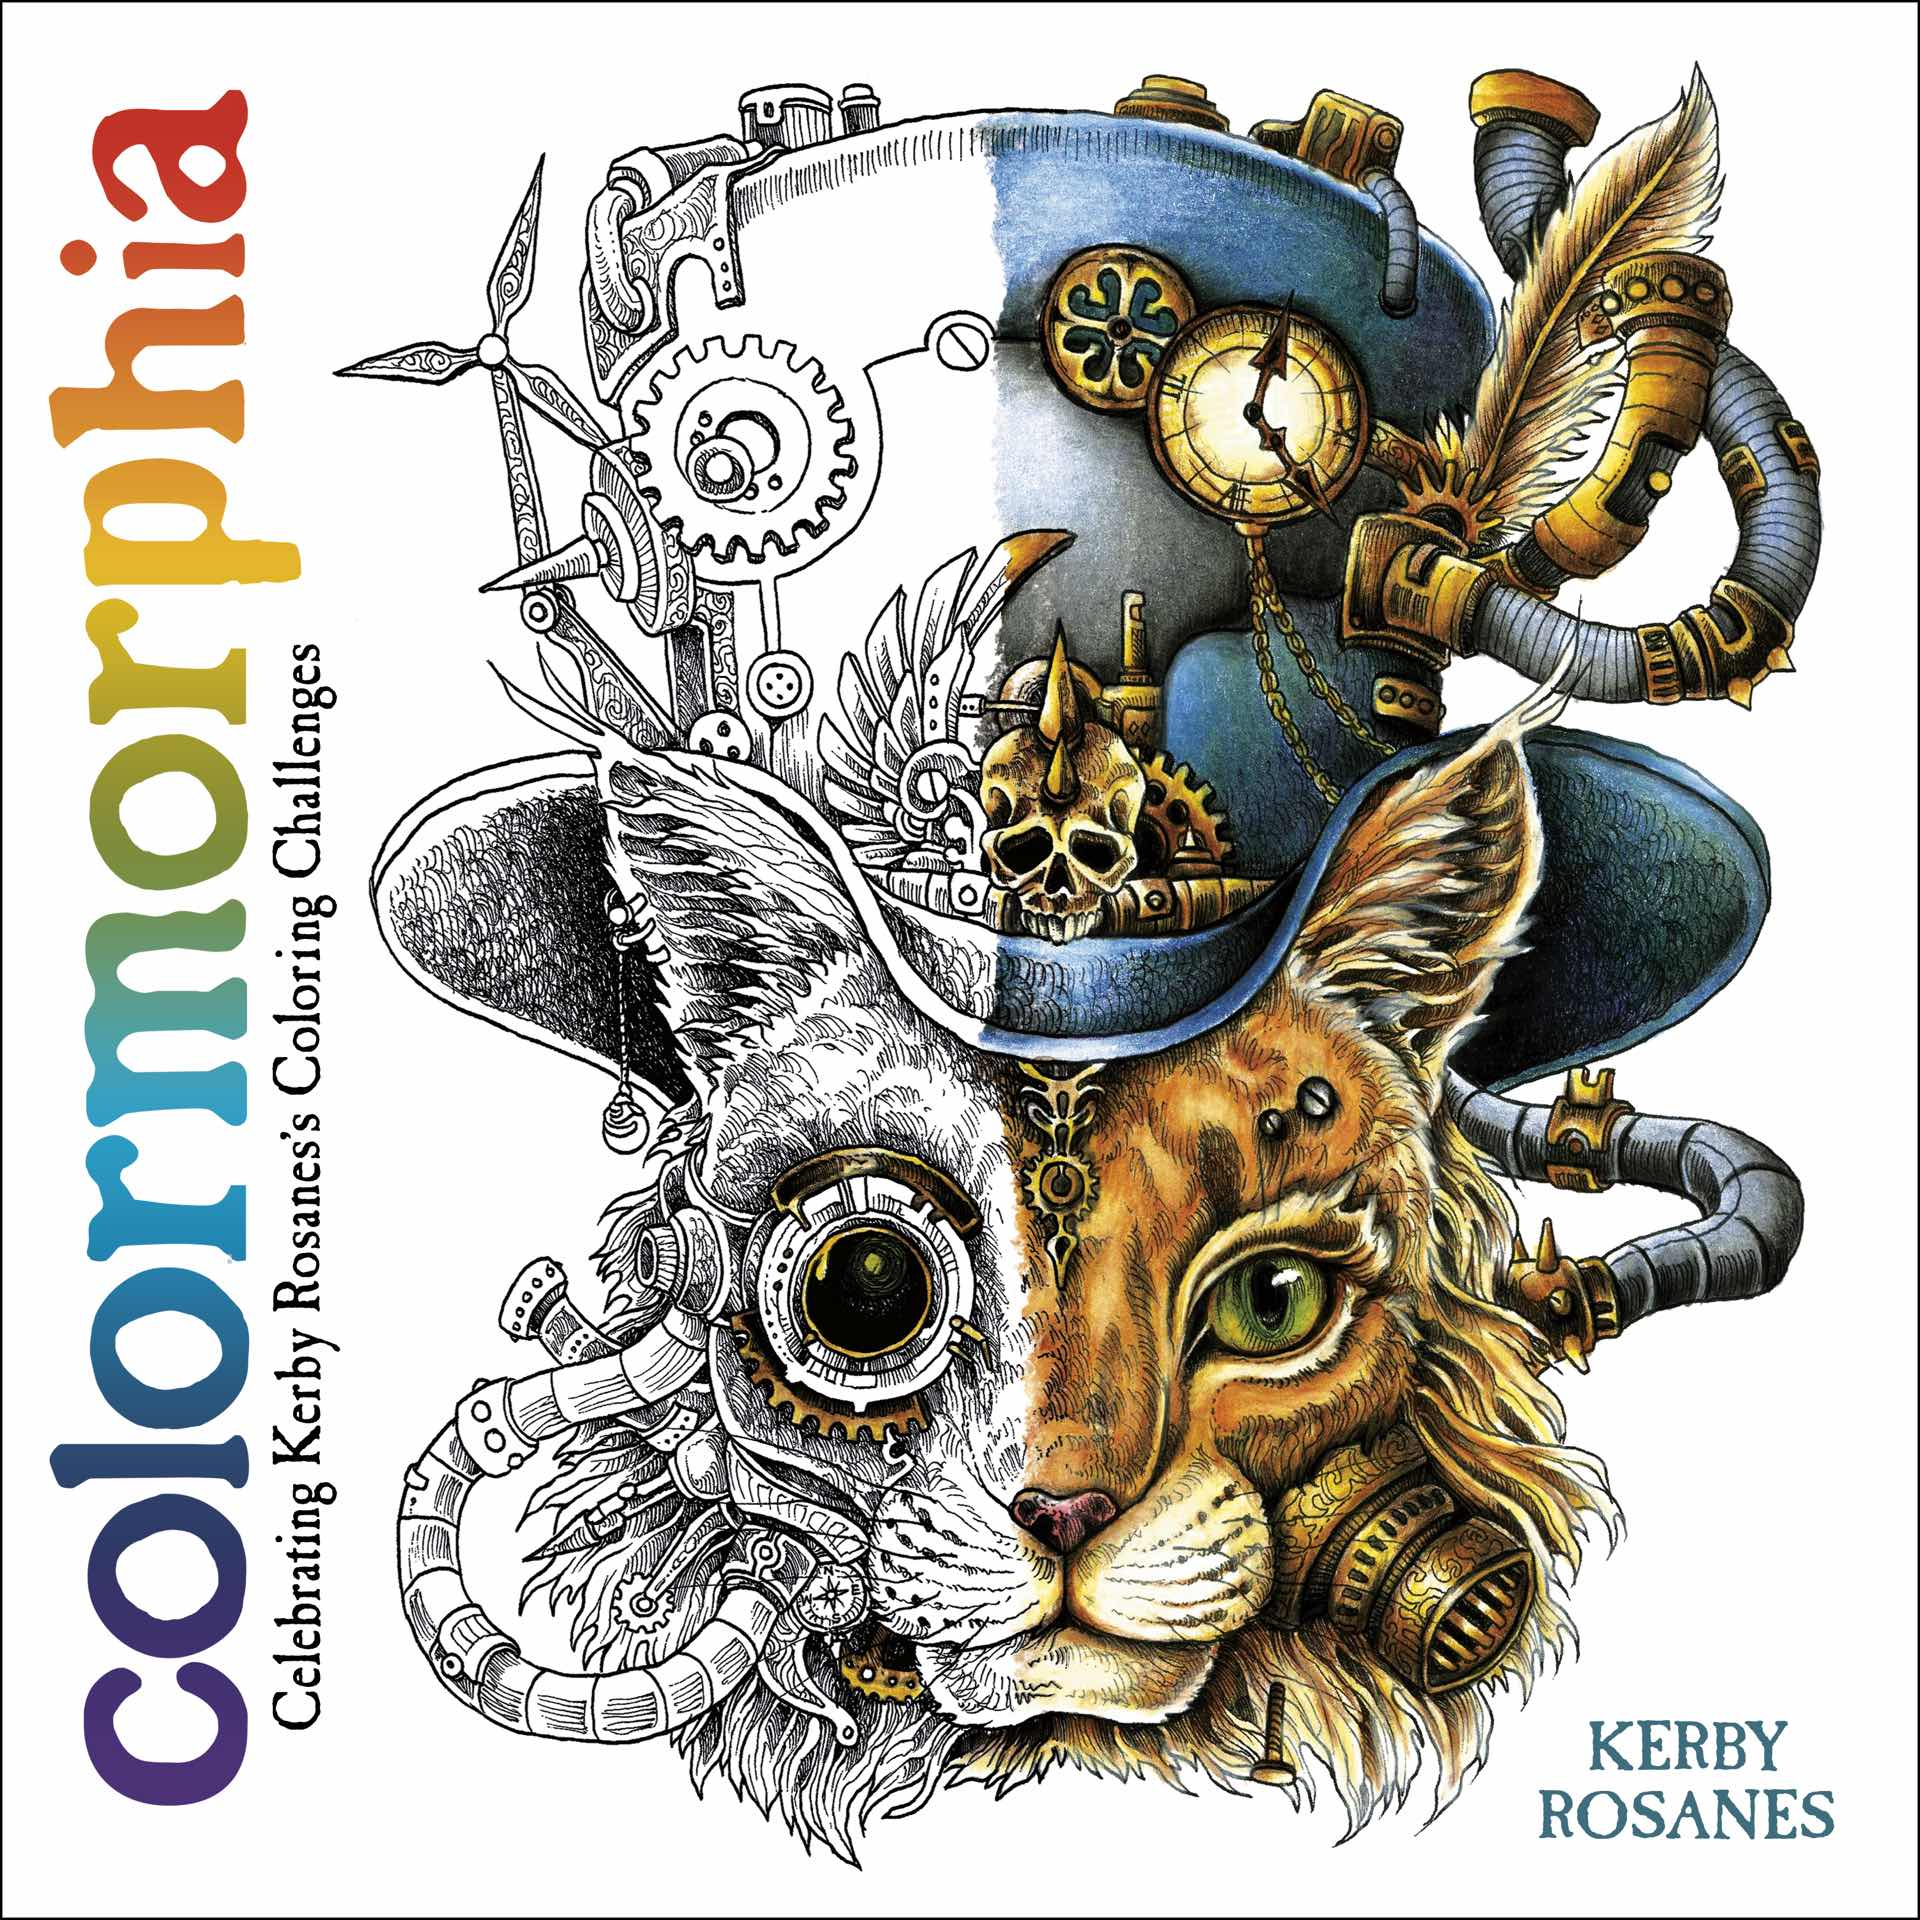 Kerby Rosanes' Colormorphia coloring book. ($8 paperback)